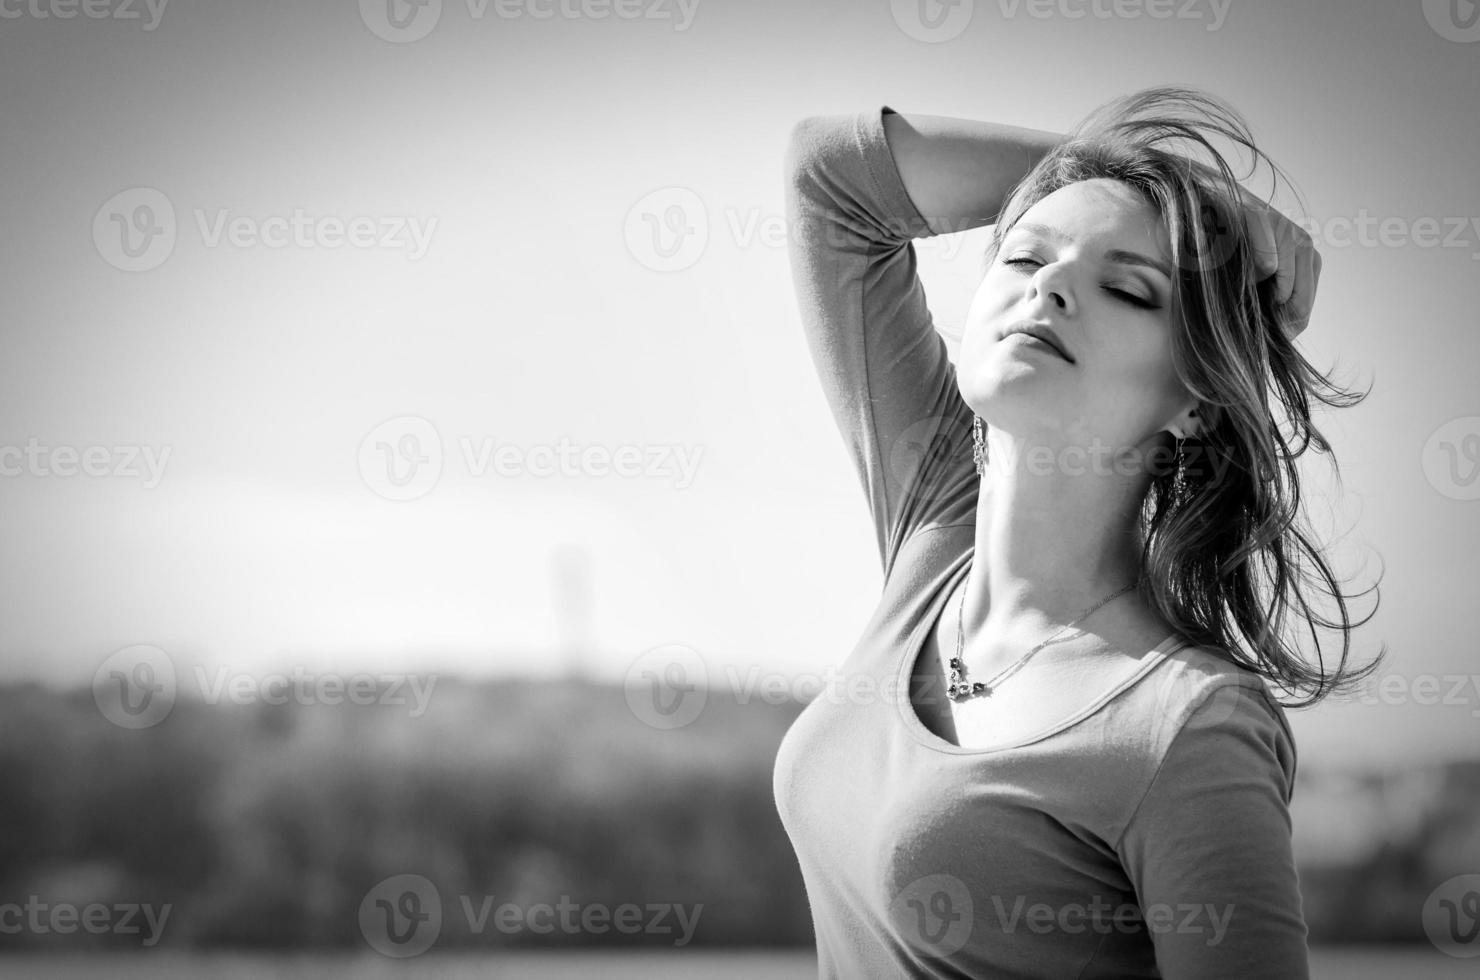 Woman in Black & White in nature photo